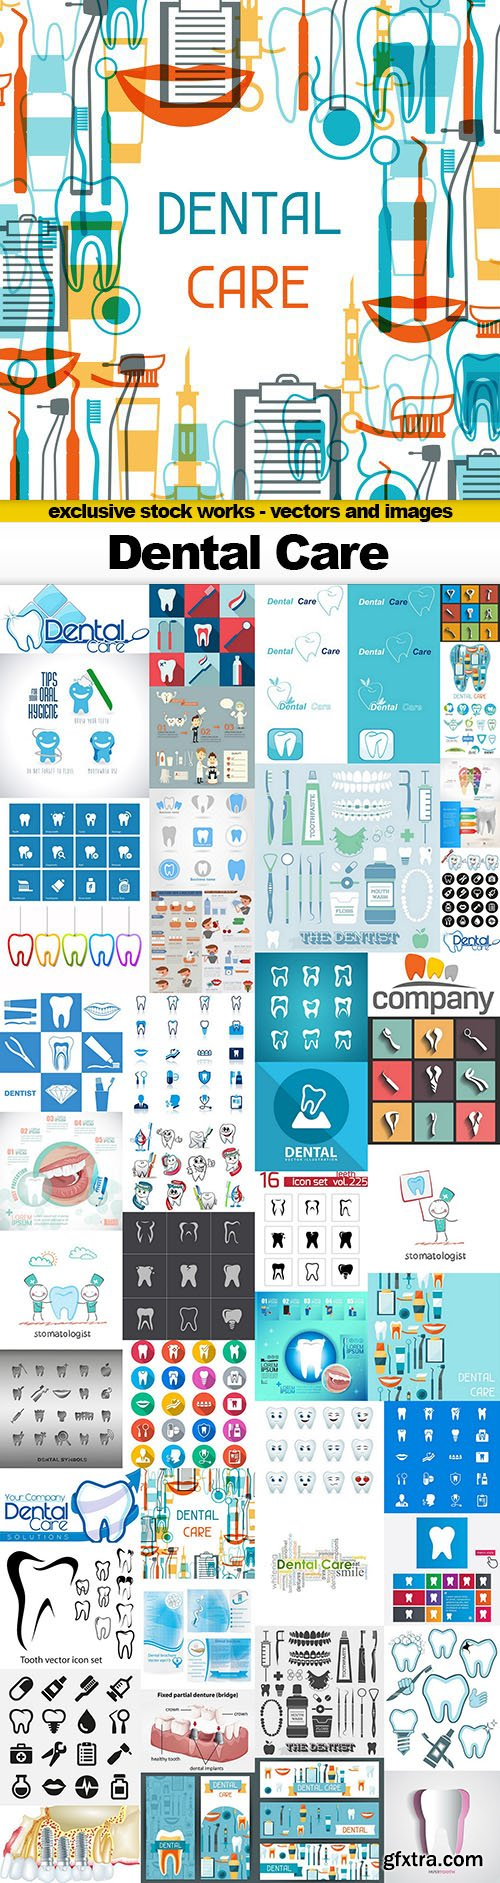 Dental Care Vector Collection - 25x EPS